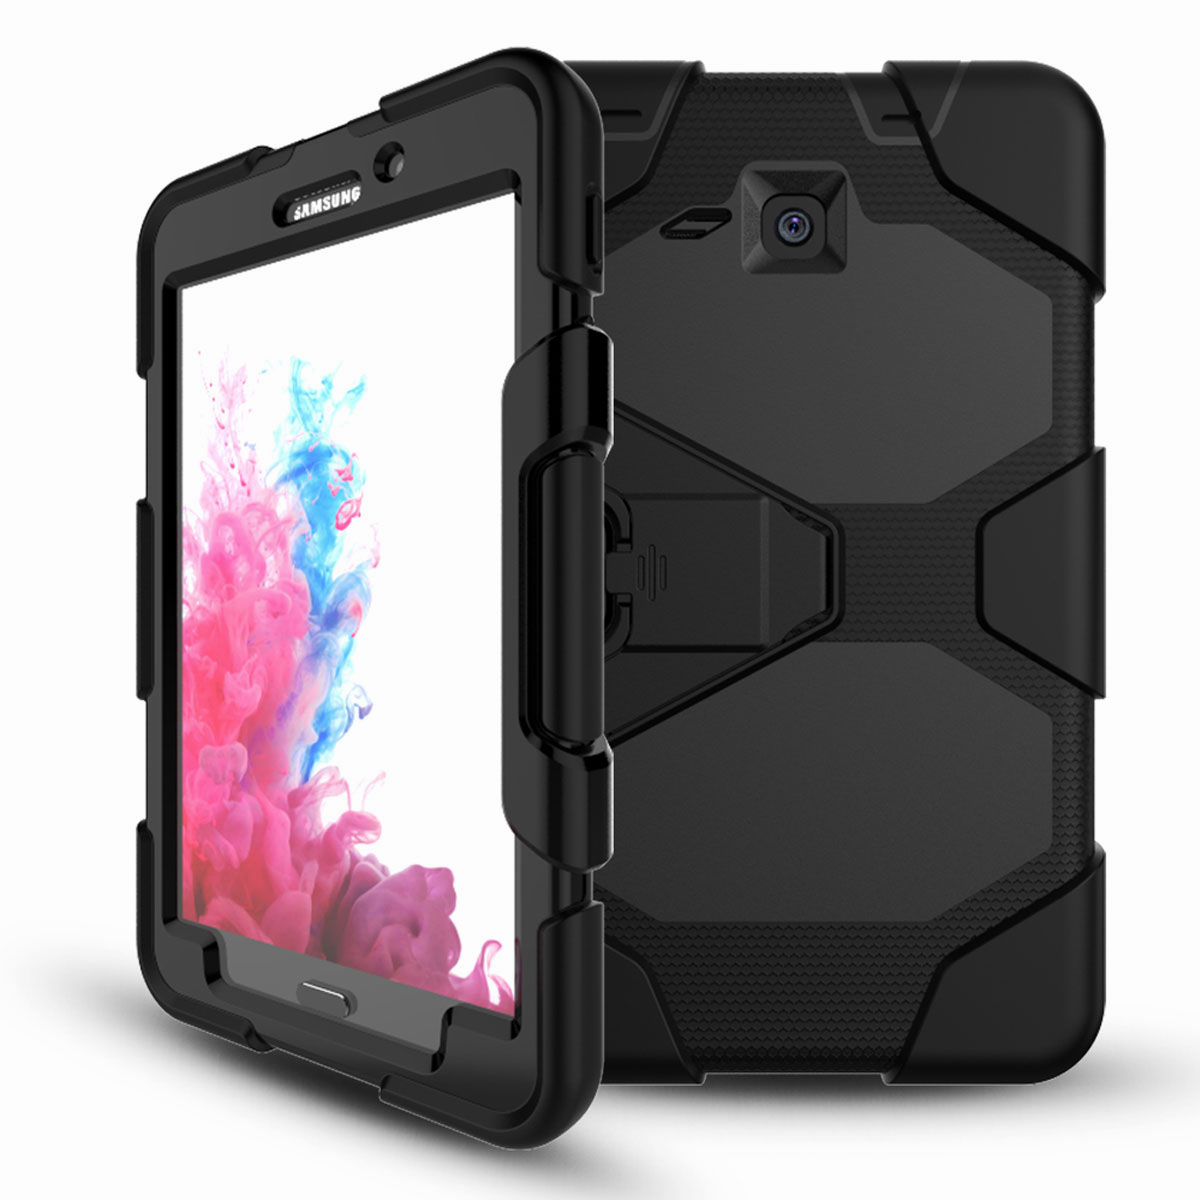 Tablet-Case-For-Samsung-Galaxy-Tab-A-E-S2-Screen-Protective-Hybrid-Rubber-Cover thumbnail 33